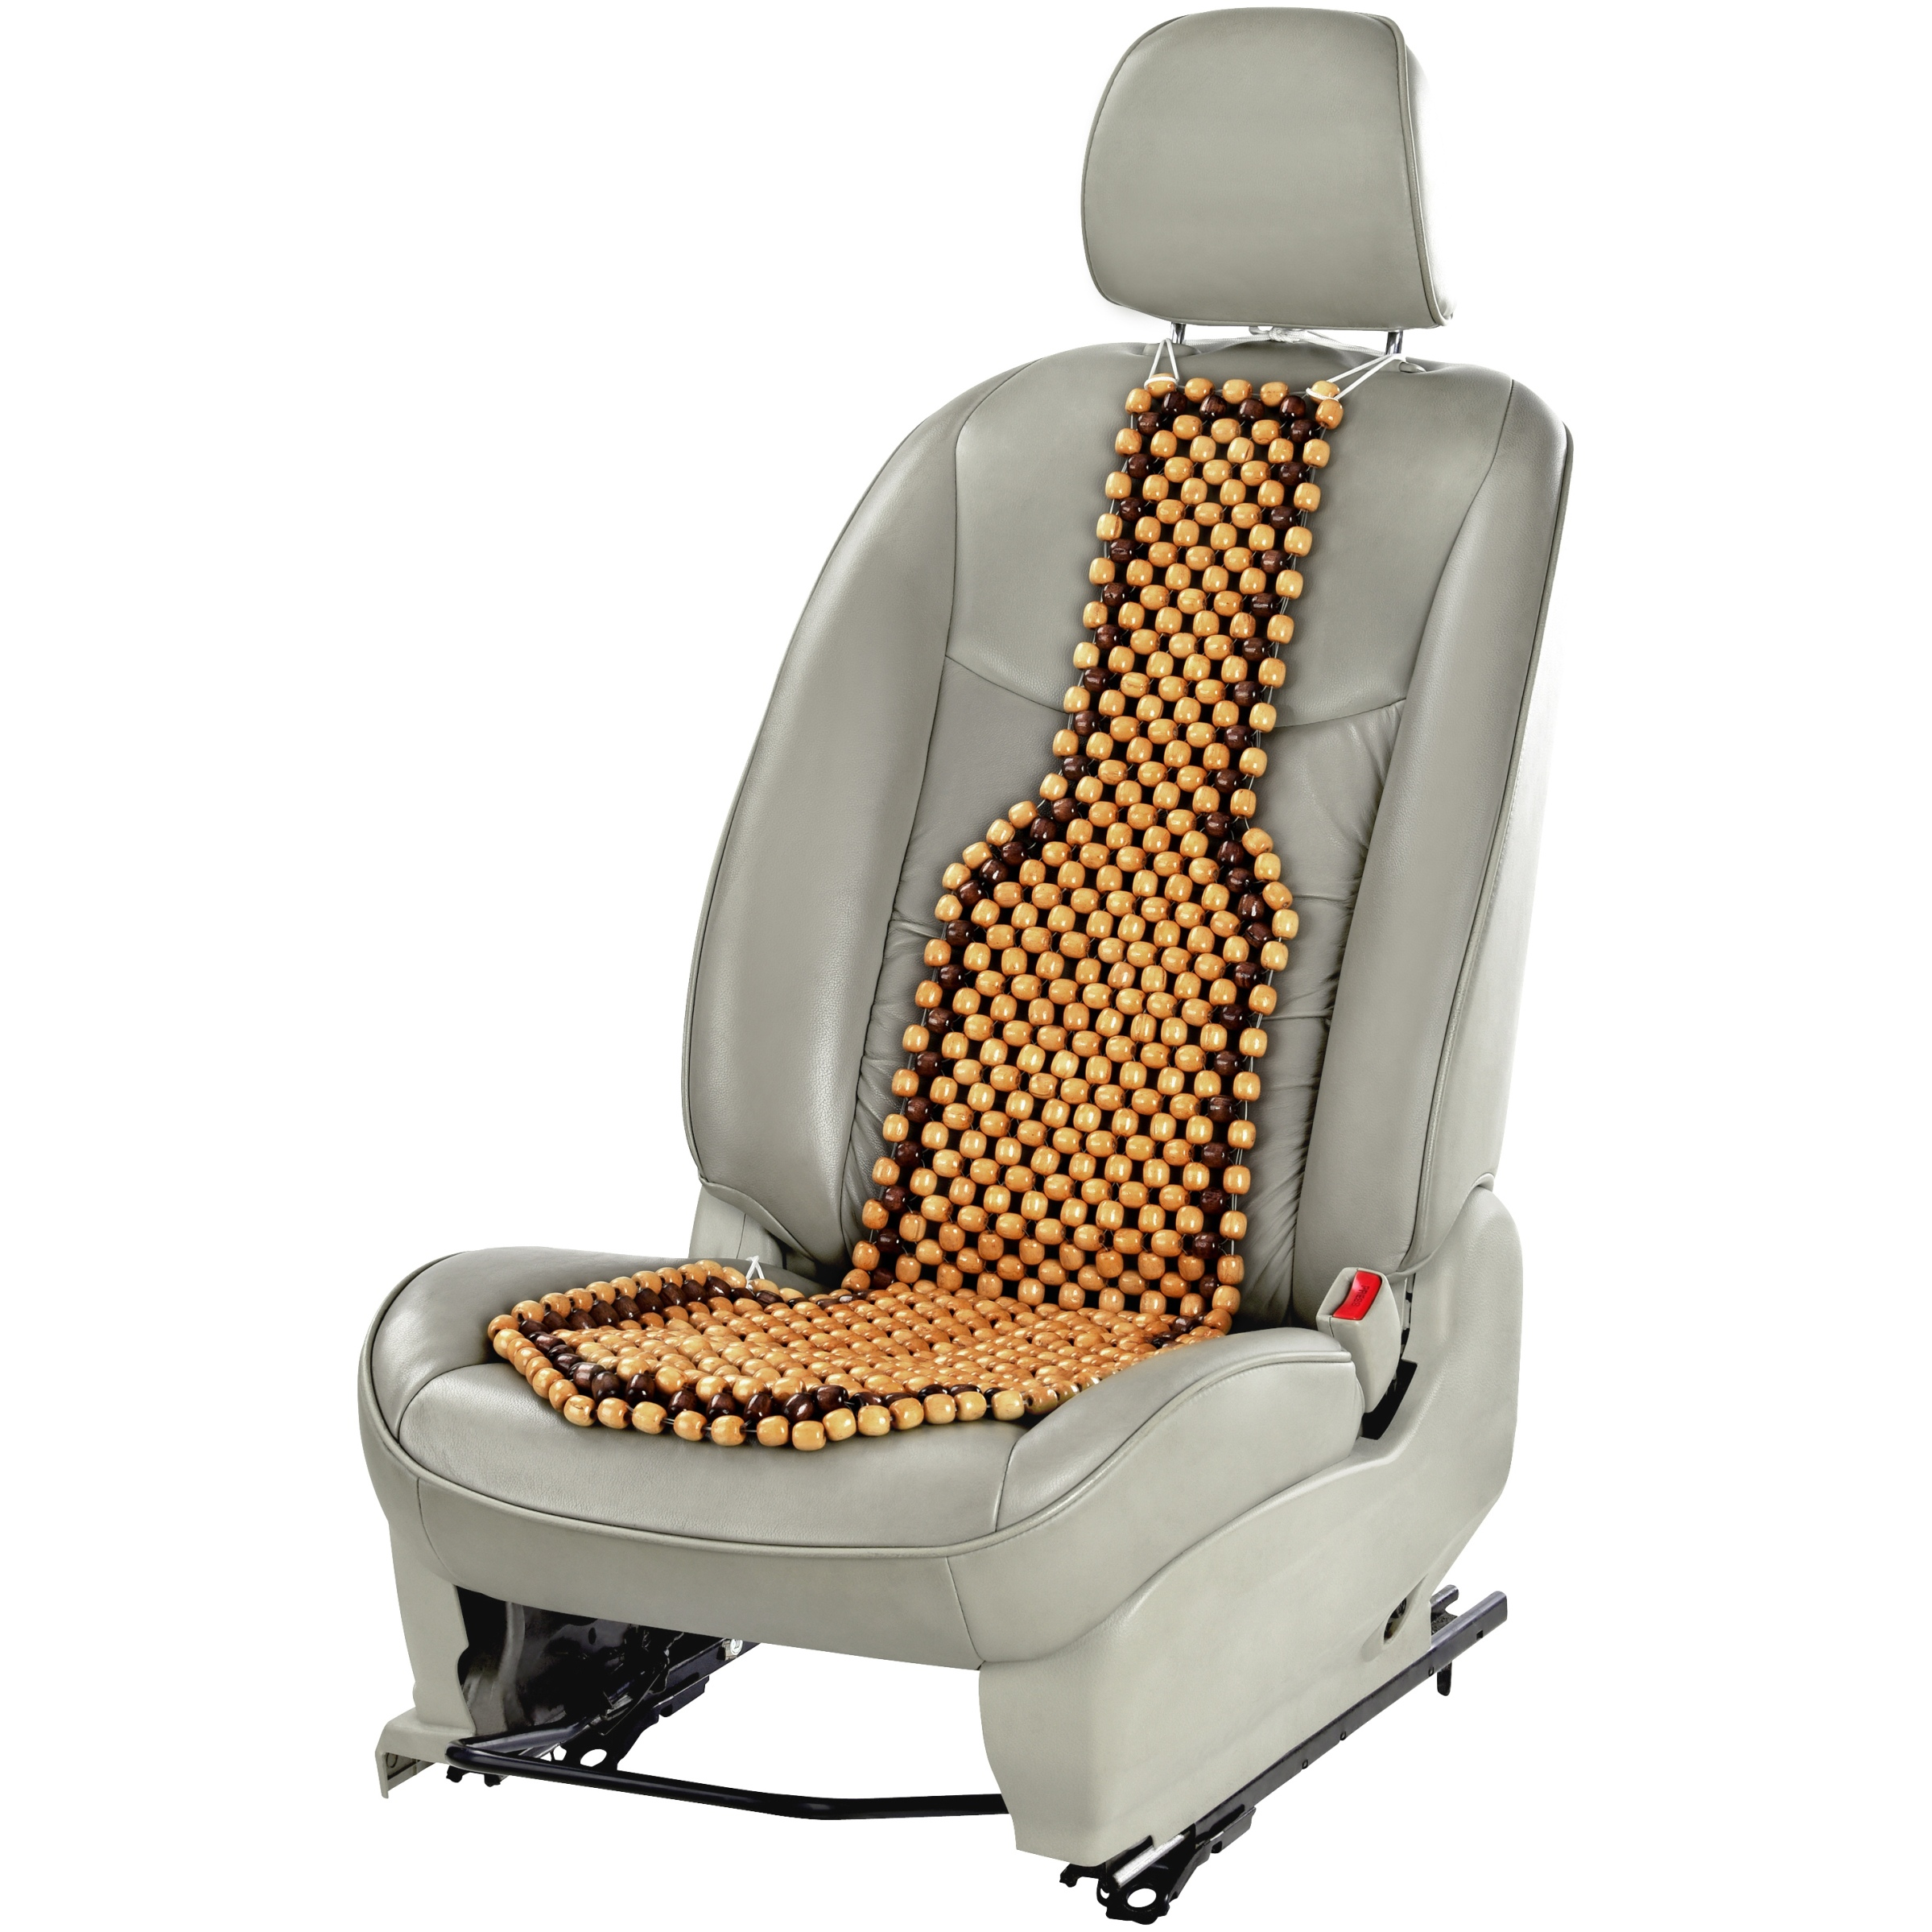 Auto Drive Two-Toned Dark & Light Wooden Beaded Seat Cushion